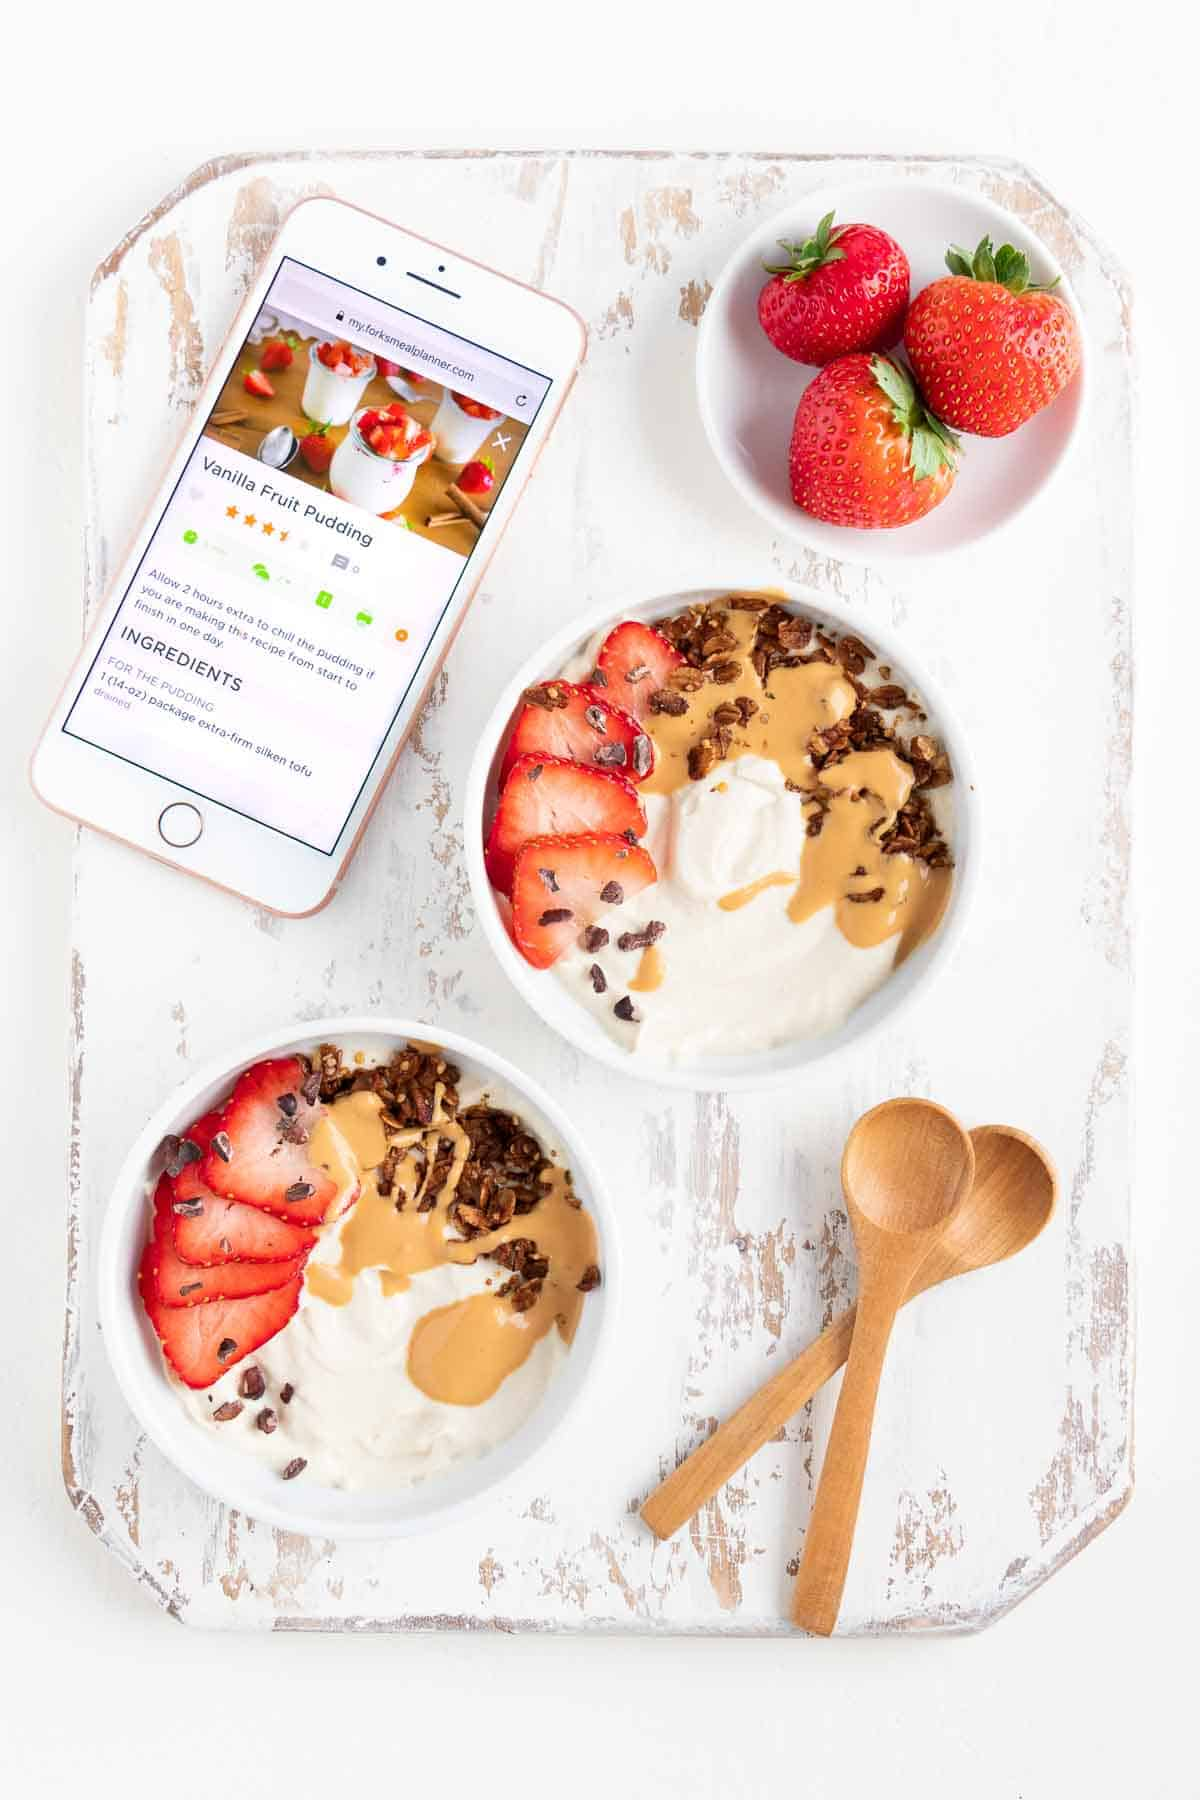 two white bowls of vanilla pudding on top of a distressed wooden cutting board with two wooden spoons, strawberries, and an iphone